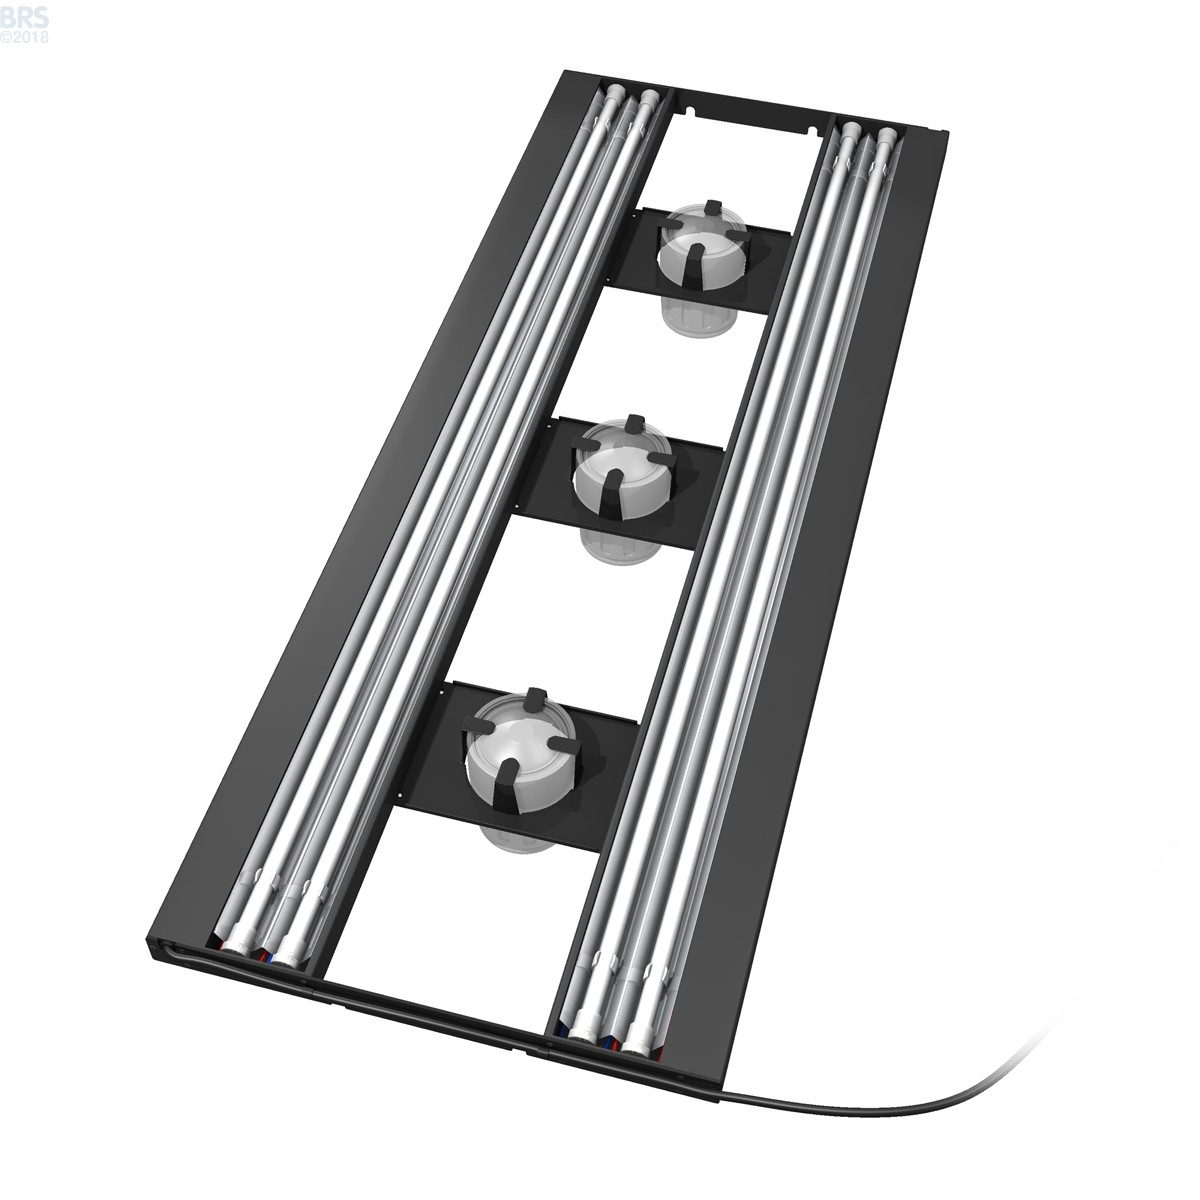 "12 X 48 Led Light Fixture: 48"" Hybrid T5HO 4x54W Fixture With LED Mounting System"